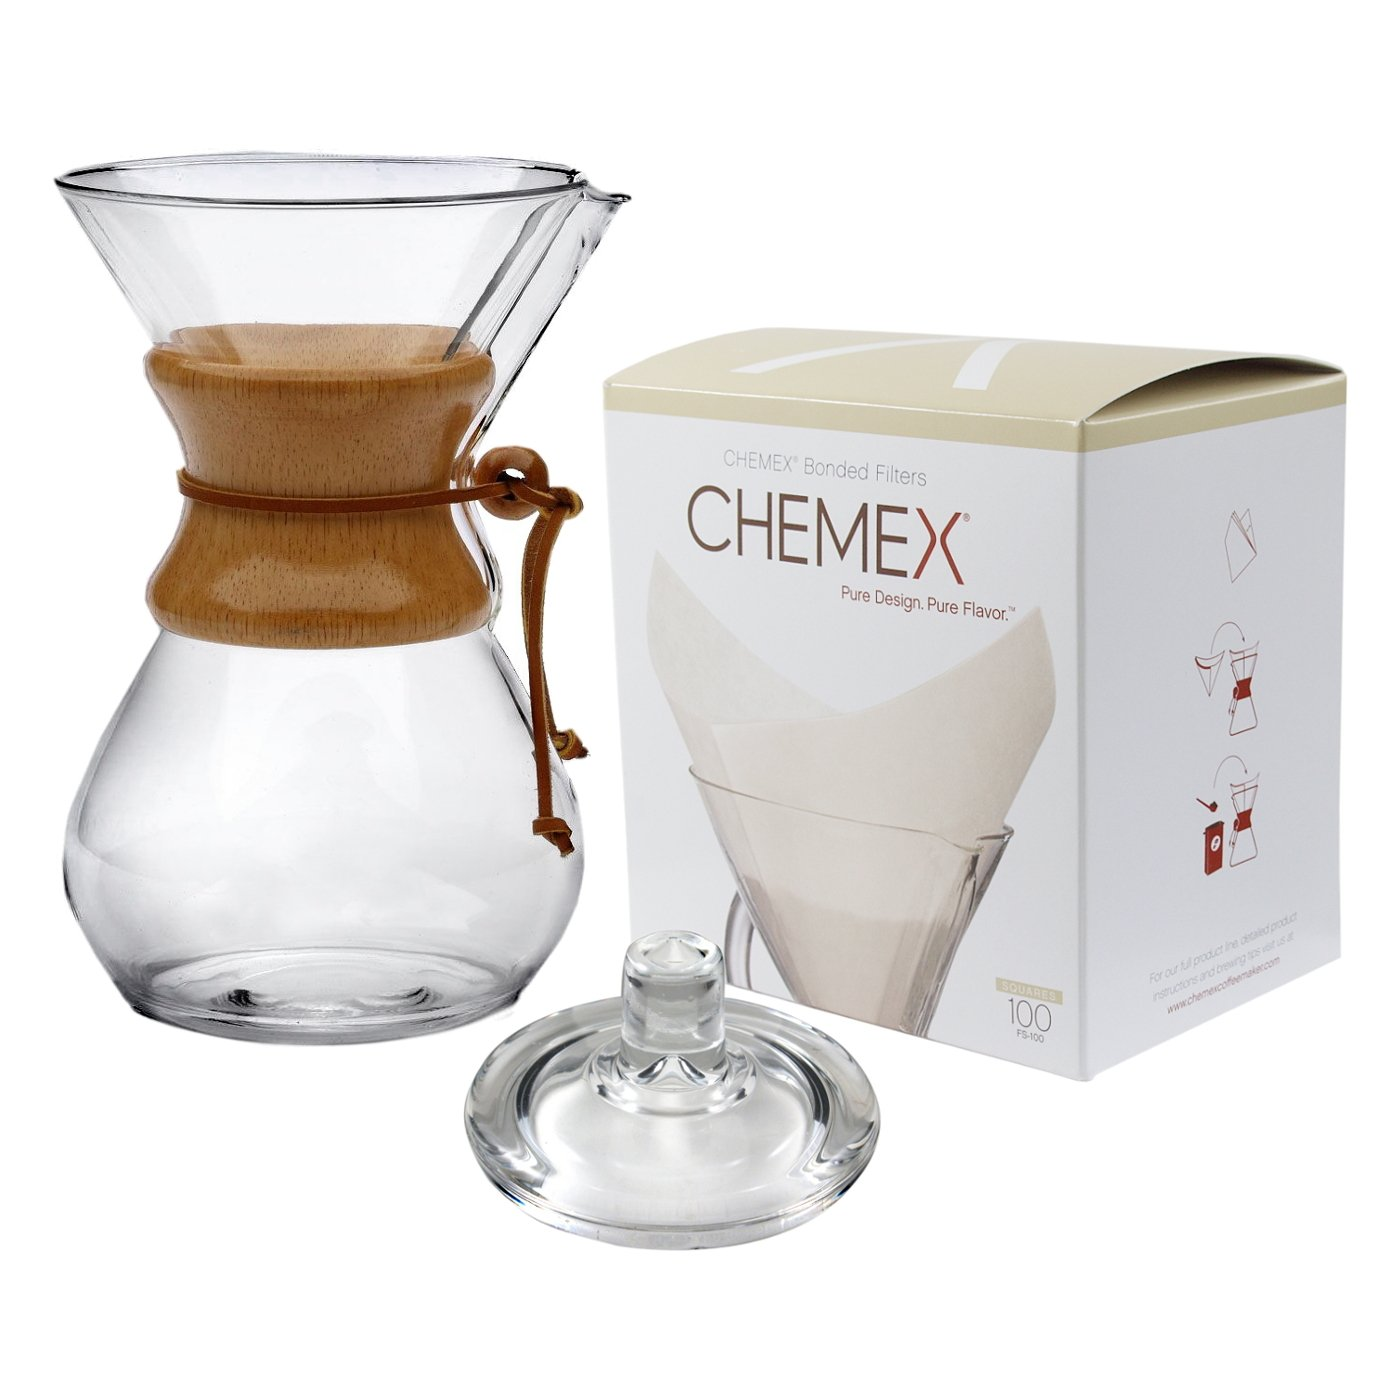 Chemex Classic Wood Collar and Tie Glass 50 Ounce Coffee Maker with Cover and 100 Count Oxygen Cleansed Bonded Square Coffee Filters